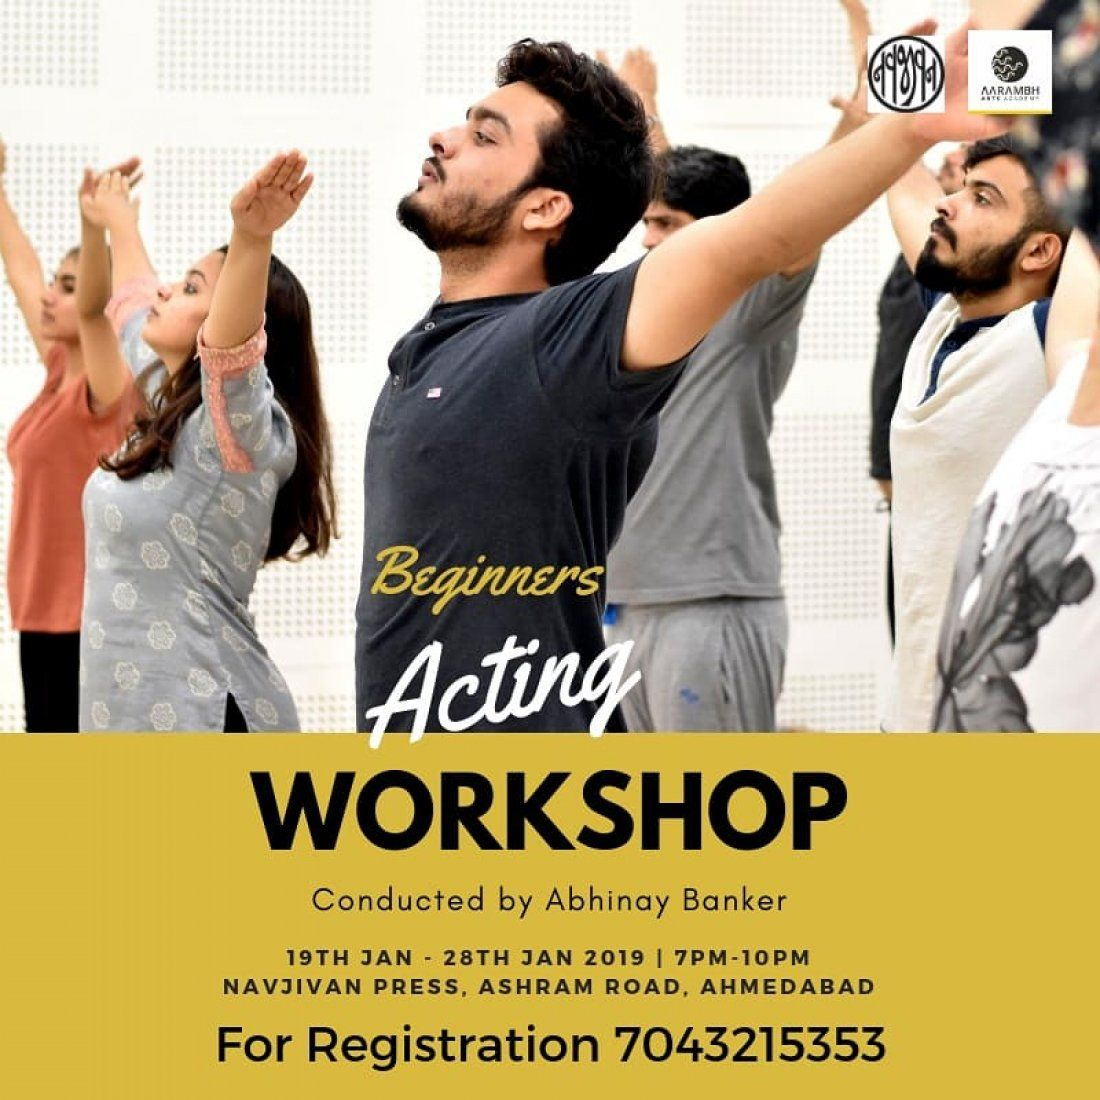 ACT with ABHINAY - Acting Workshop